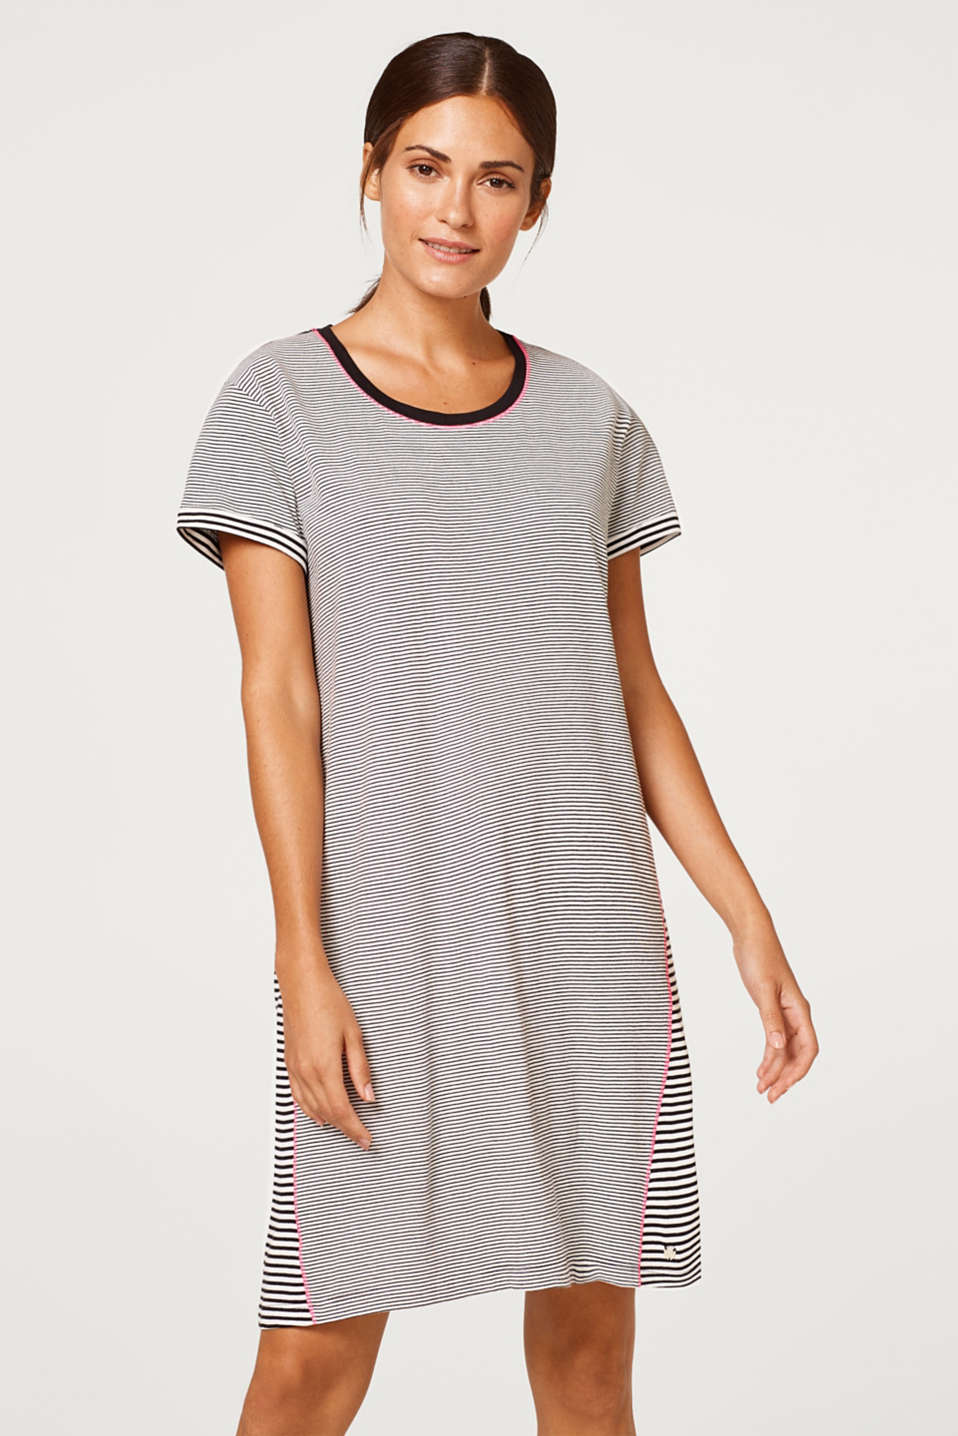 Esprit - Nightshirt with stripes, 100% cotton